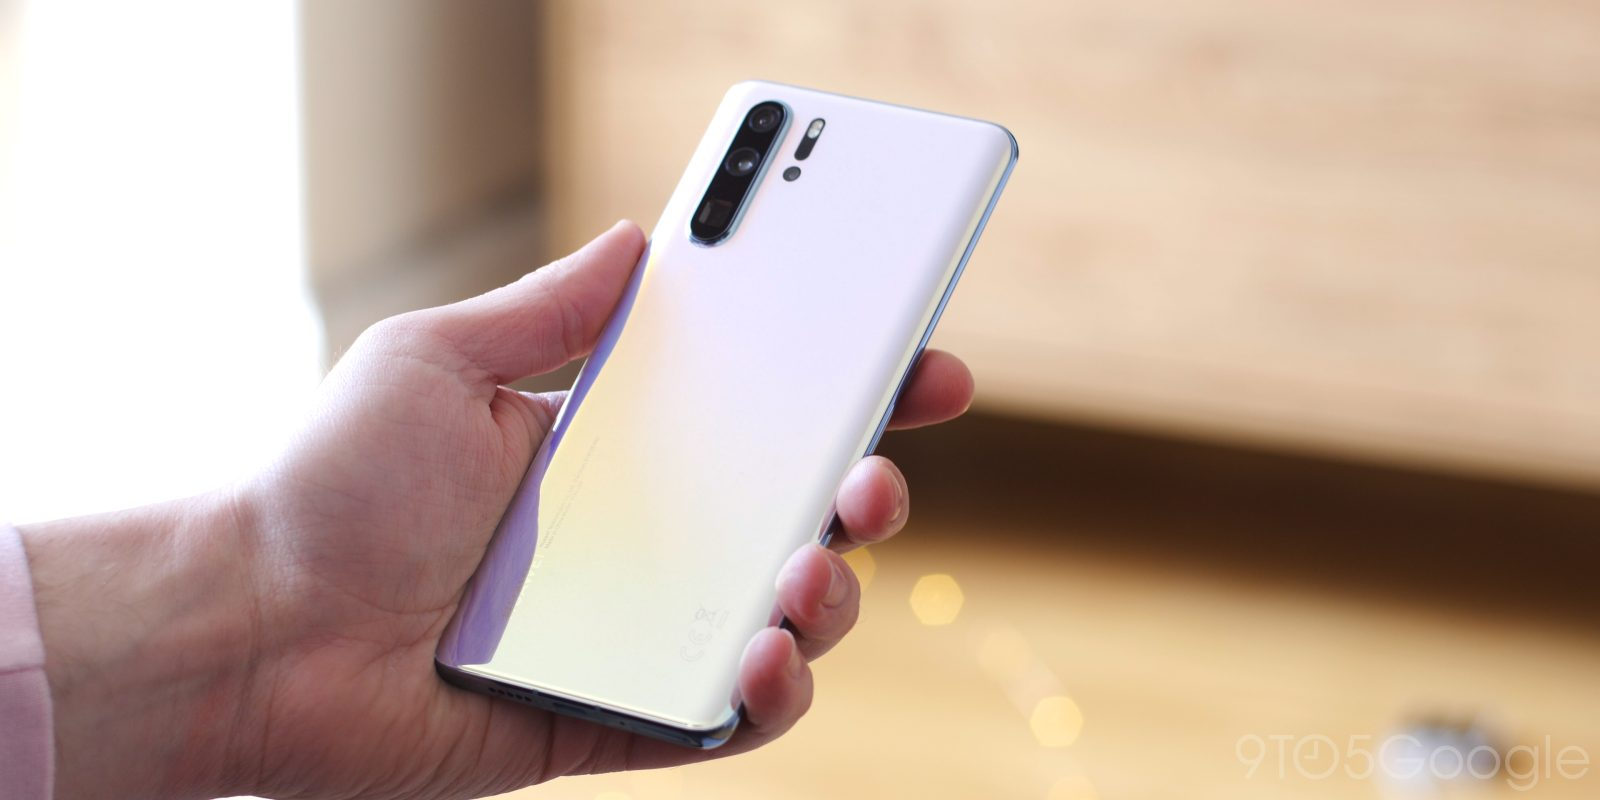 FedEx refused to deliver Huawei P30 Pro from UK to US